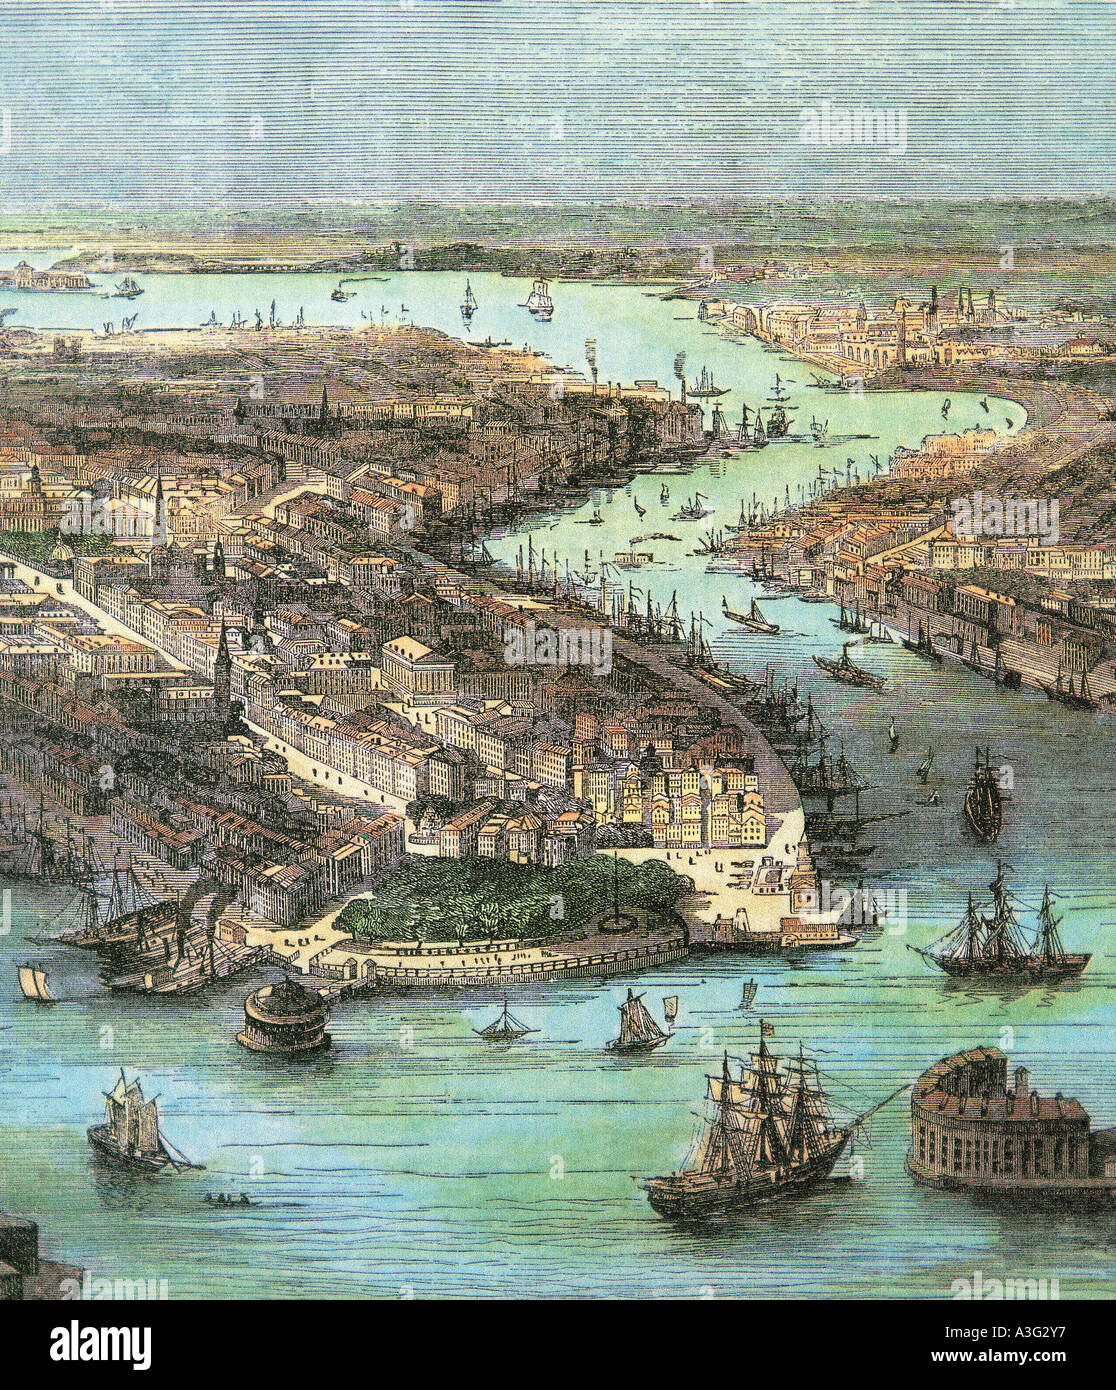 NEW YORK in an early 19th century engraving - Stock Image